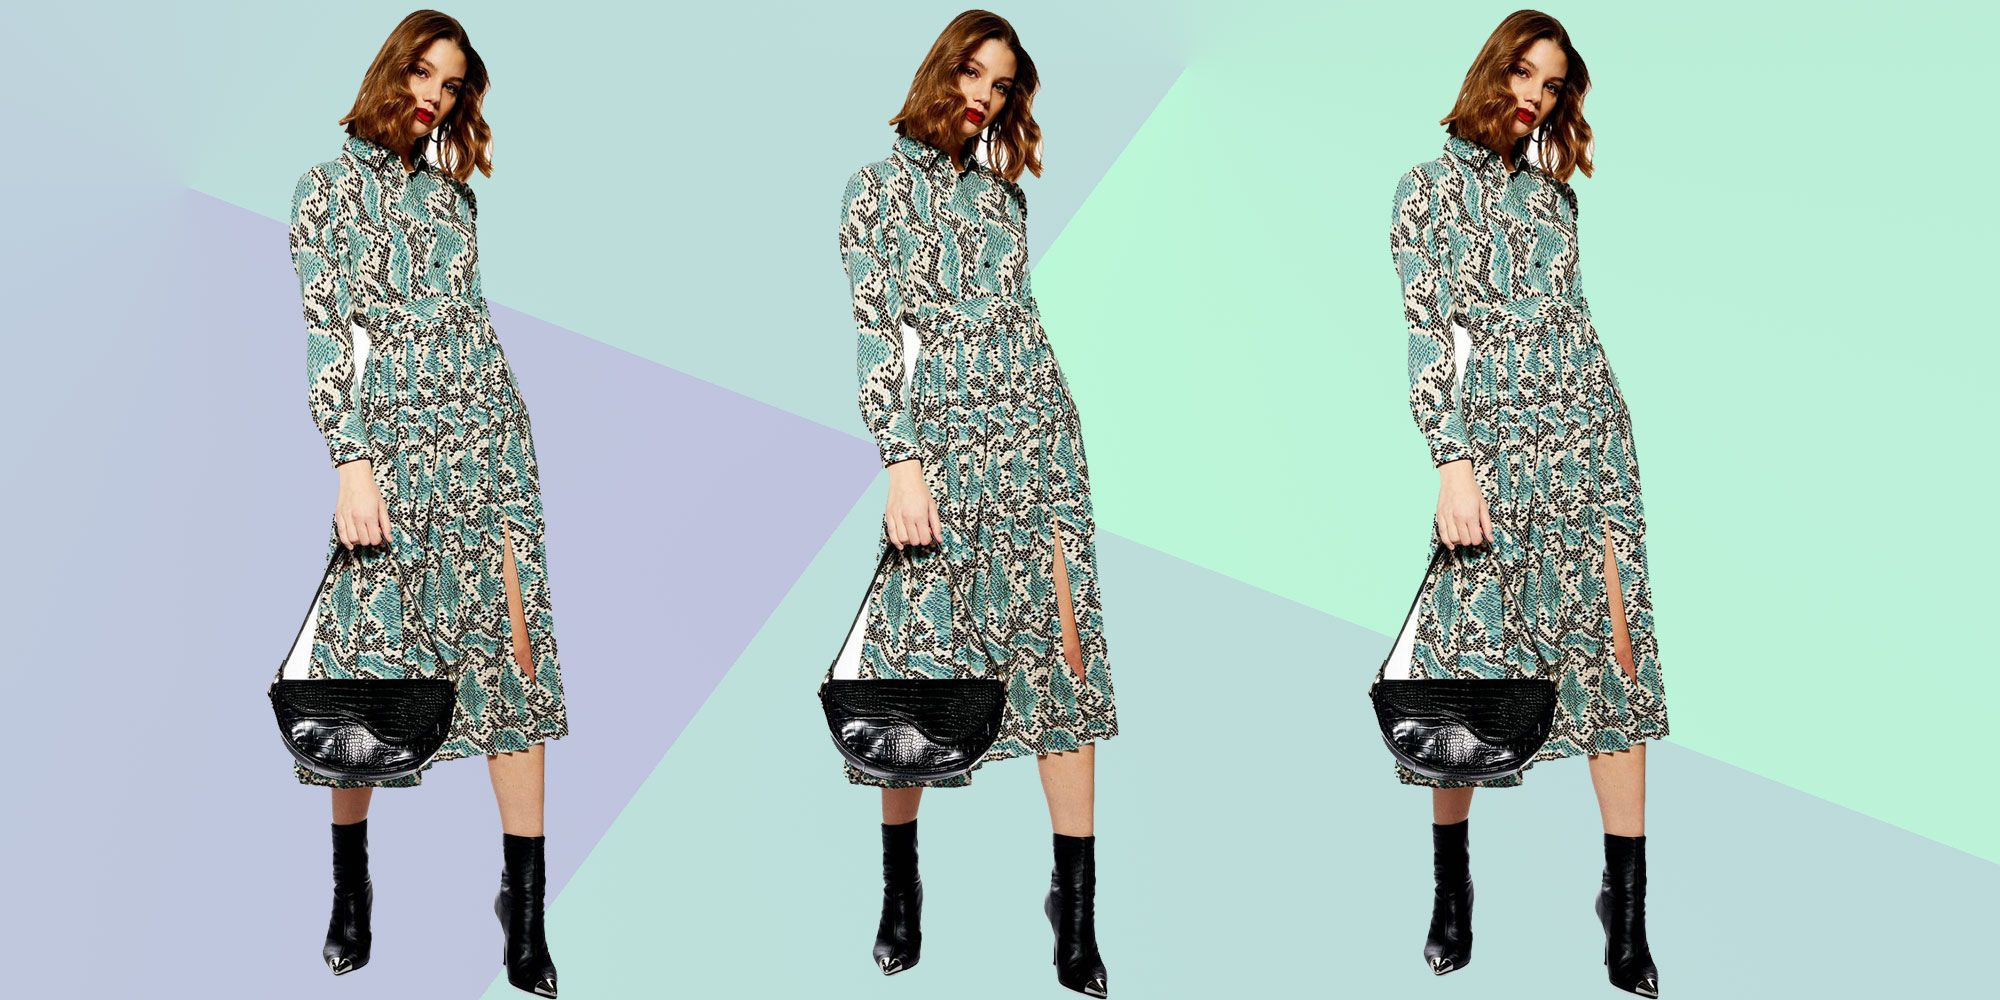 clearance prices new style & luxury exclusive shoes Topshop now has a snake-print version of their midi shirt dress